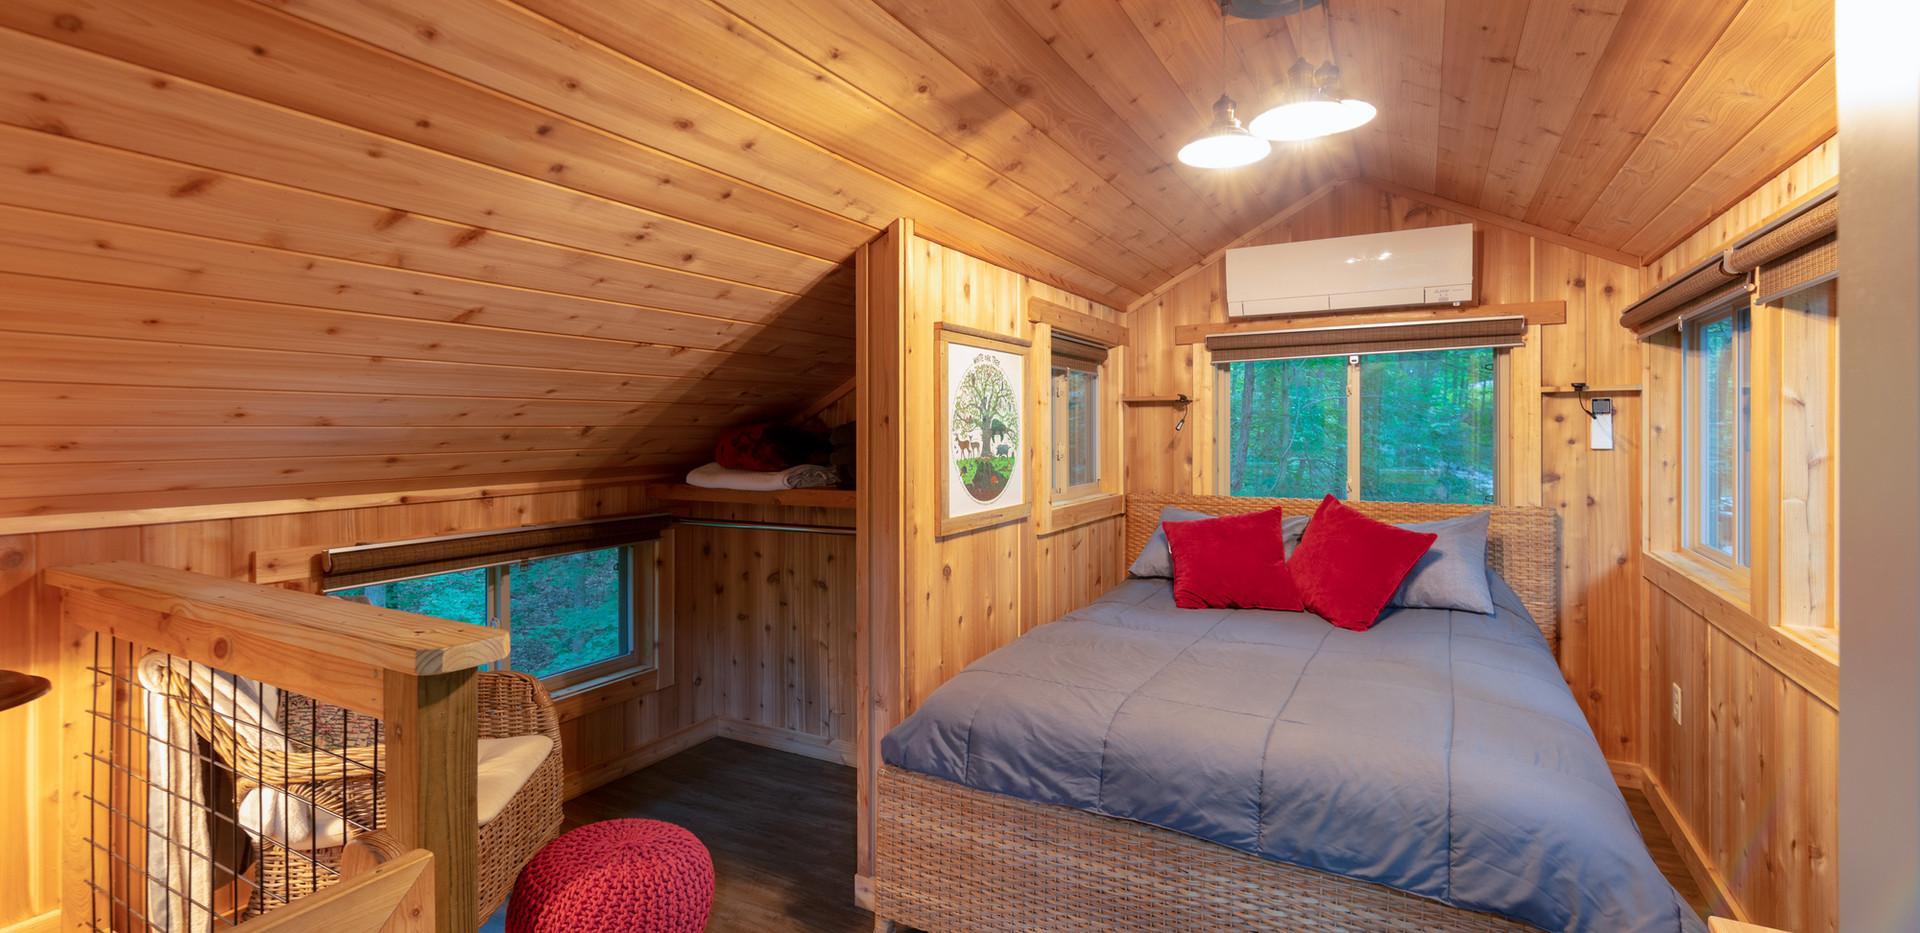 White Oak Treehouse Loft Bedroom | Hocking Hills Treehouse Cabins